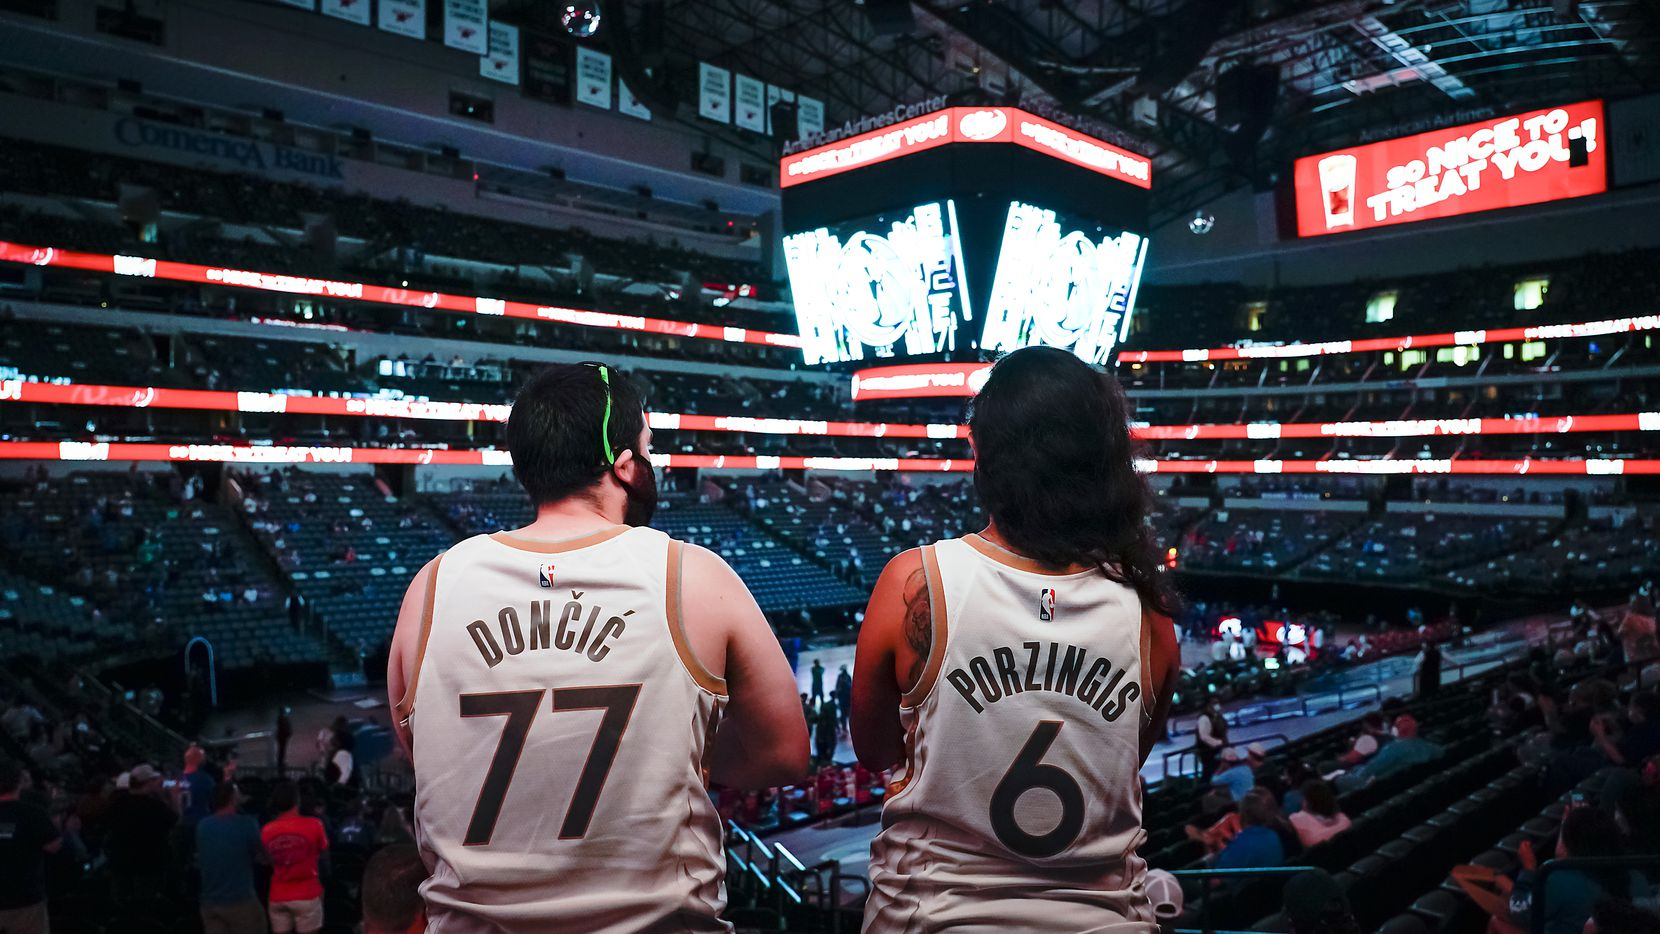 Fans wearing the jerseys of Dallas Mavericks guard Luka Doncic and Kristaps Porzingis cheer as the team is announced before an NBA basketball game against the Sacramento Kings at American Airlines Center on Sunday, May 2, 2021, in Dallas.